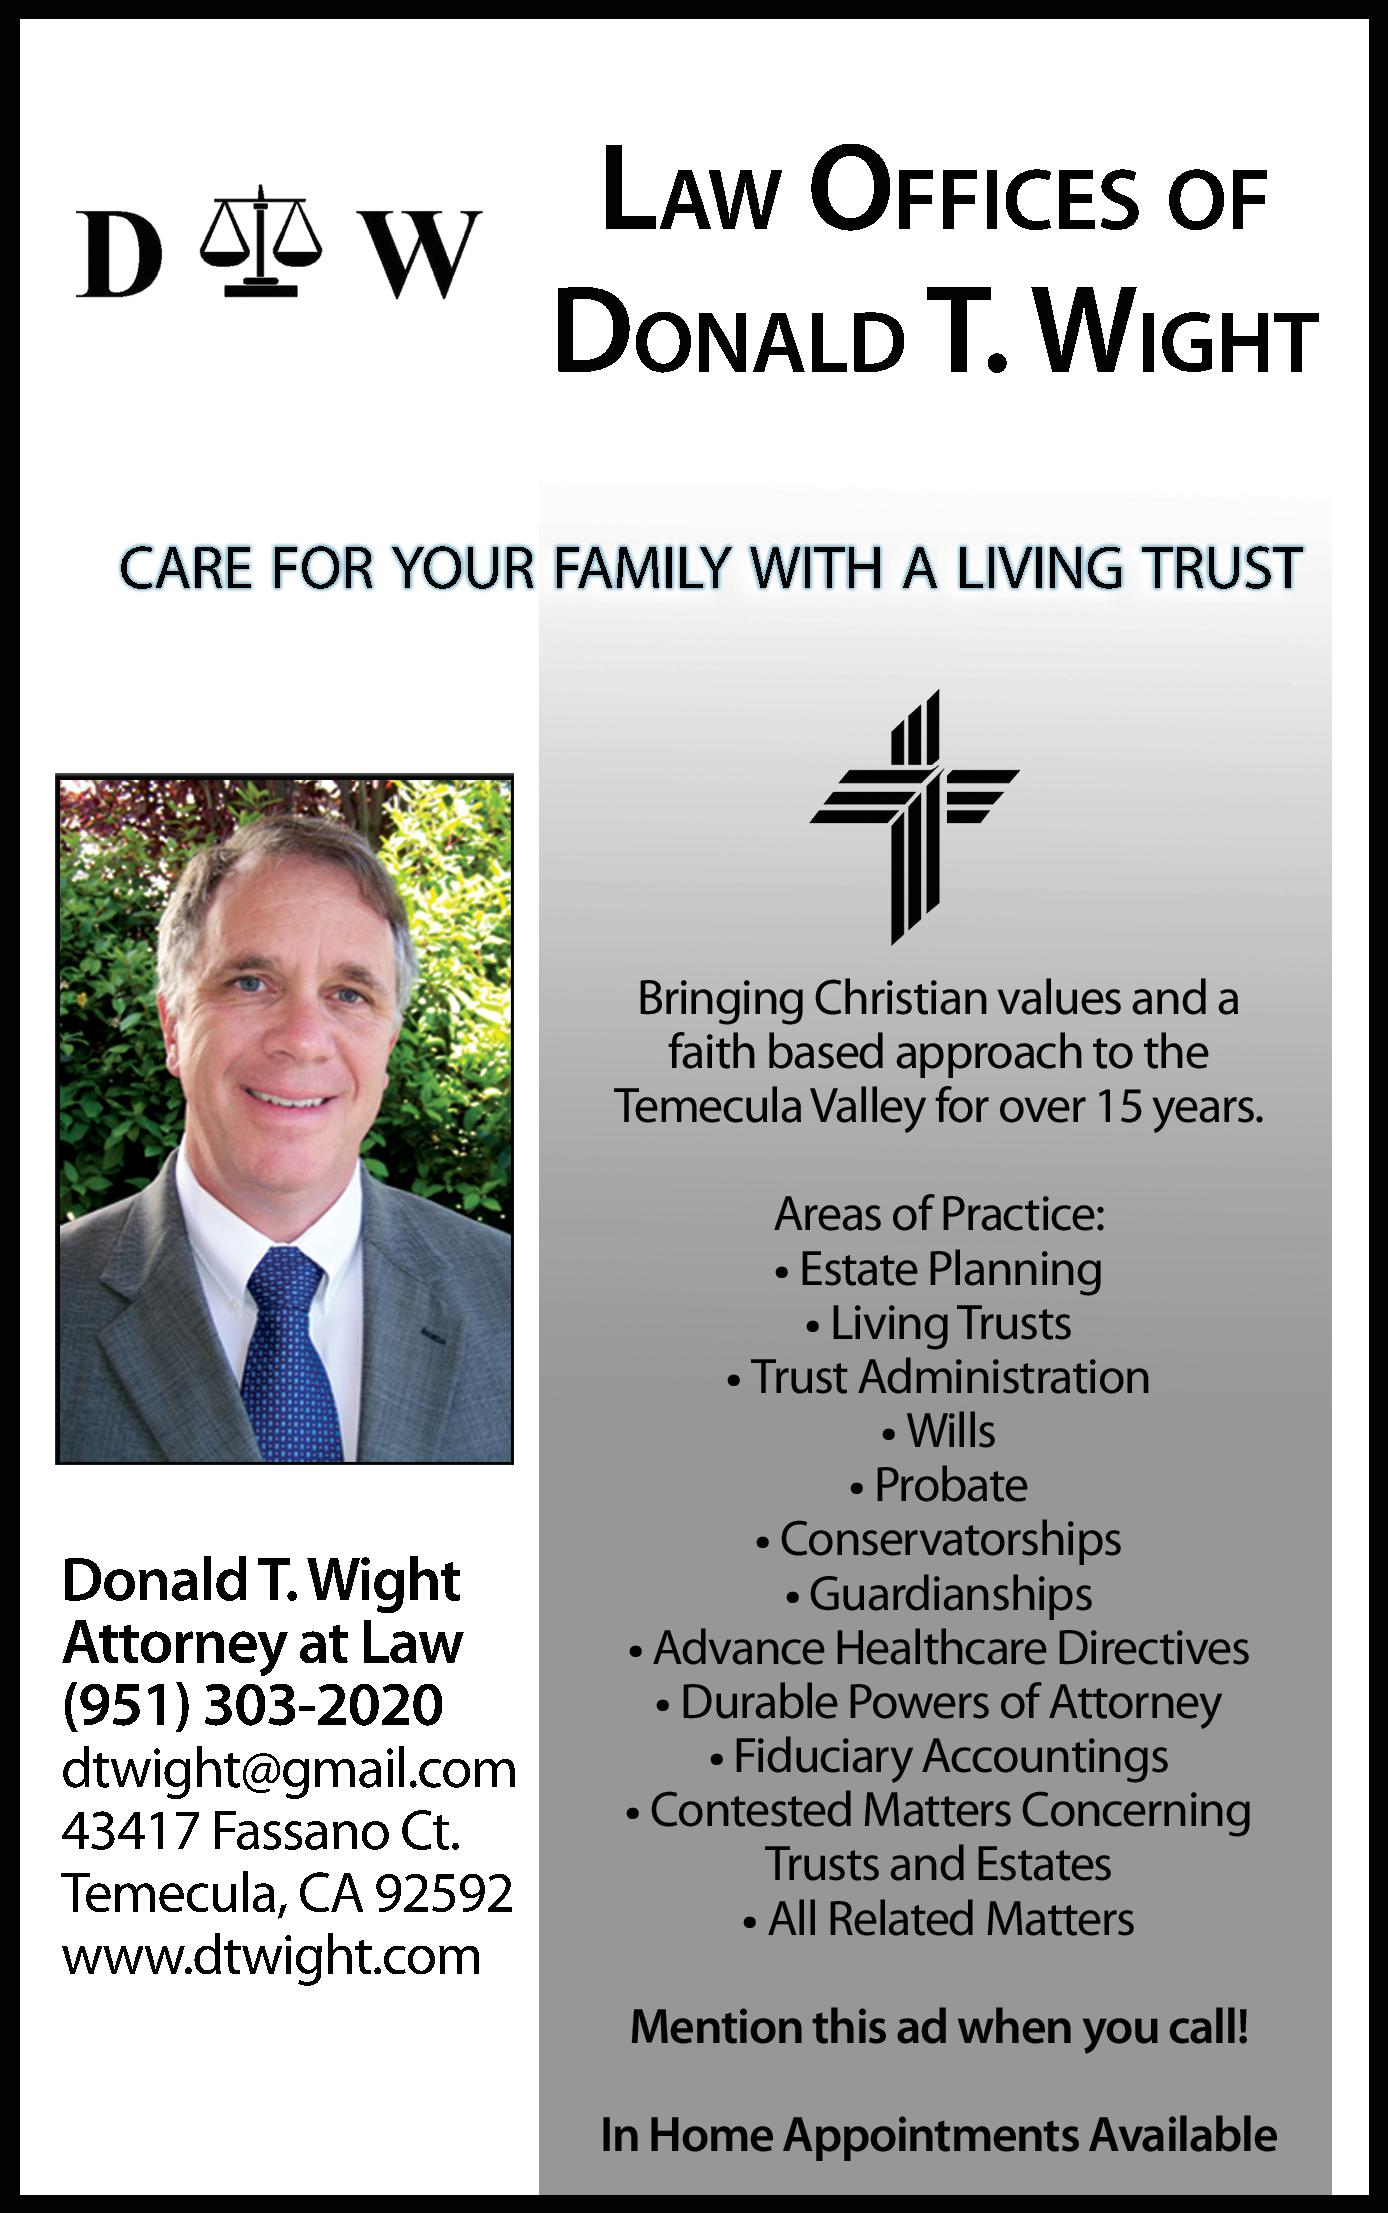 Law Offices of Donald T. Wight